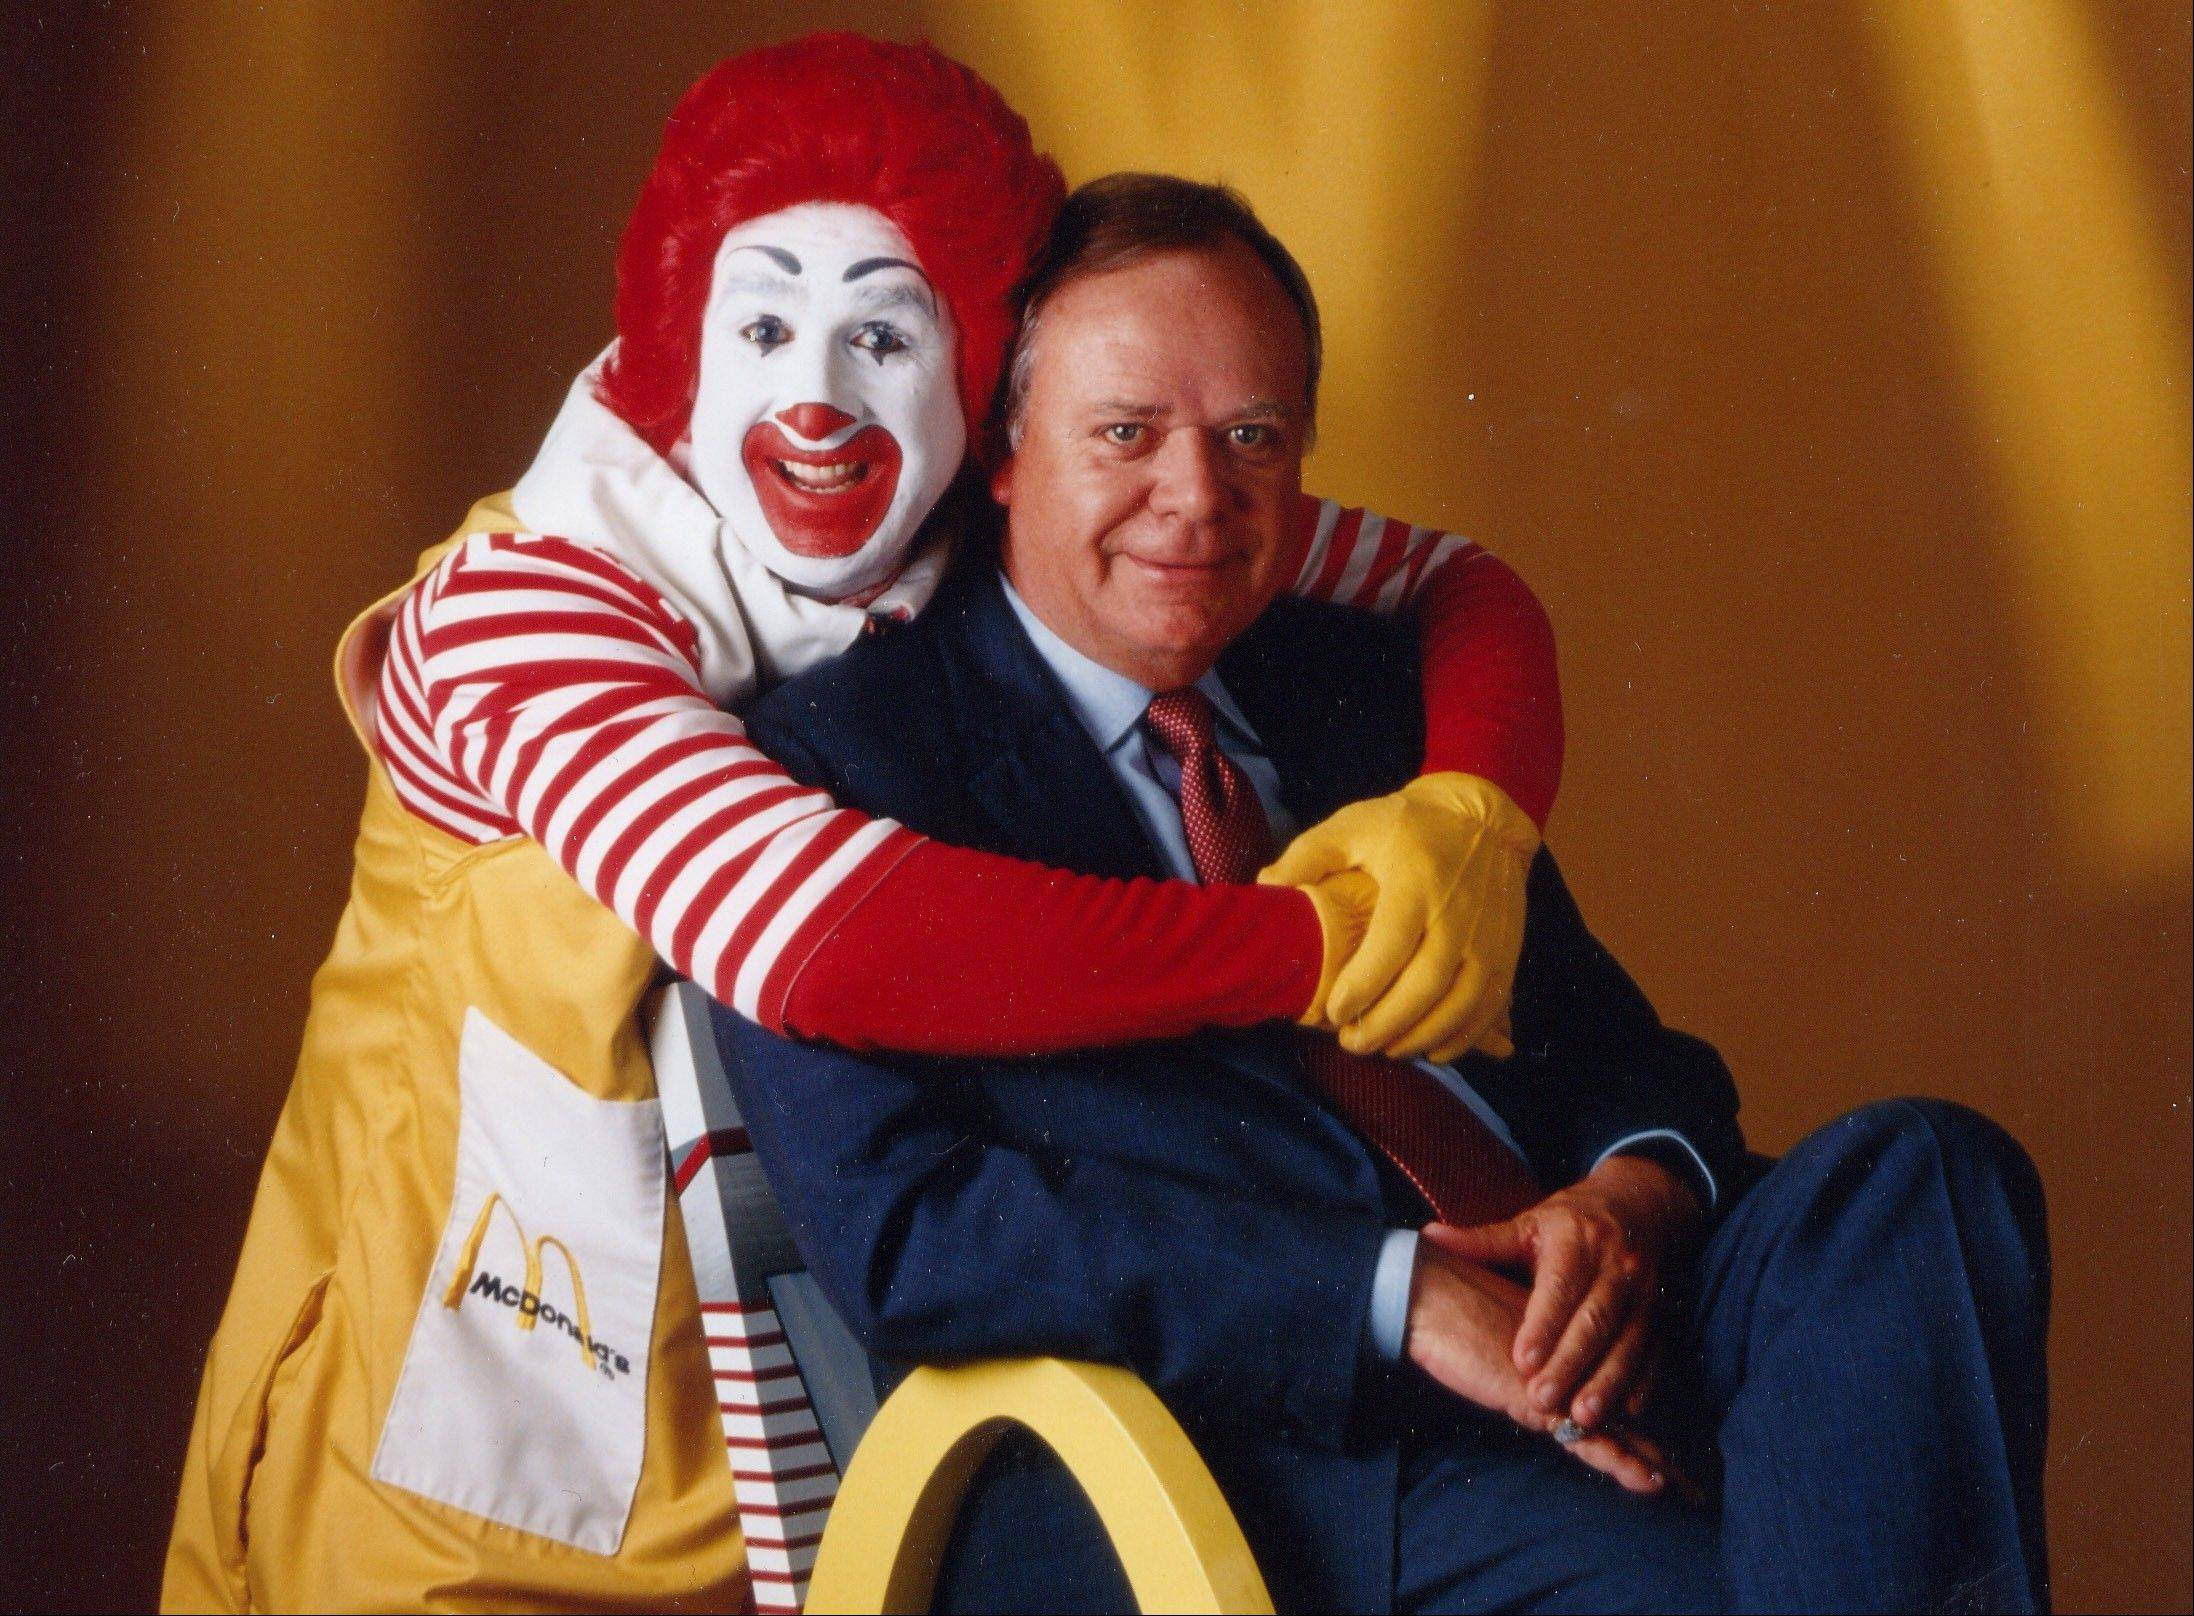 "Former McDonald's CEO Fred L. Turner, who helped expand the fast-food chain's global footprint and spearheaded the creation of ""Hamburger University,"" died Thursday after suffering complications from pneumonia, the company said. He was 80 years old."